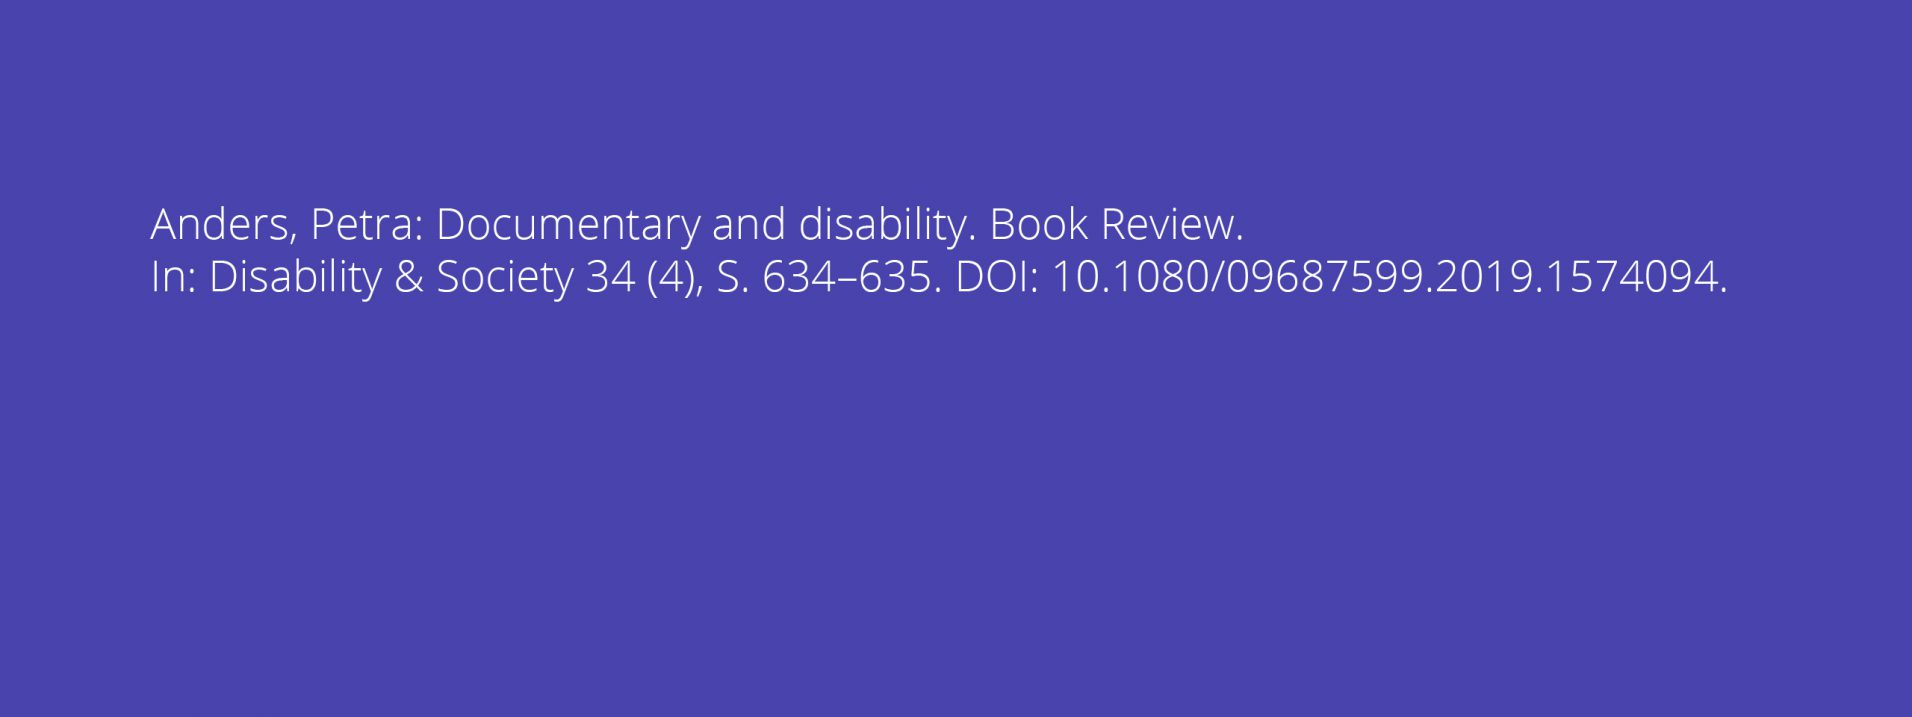 Anders, Petra: Documentary and disability. Book Review. In: Disability & Society 34 (4), S. 634–635. DOI: 10.1080/09687599.2019.1574094.